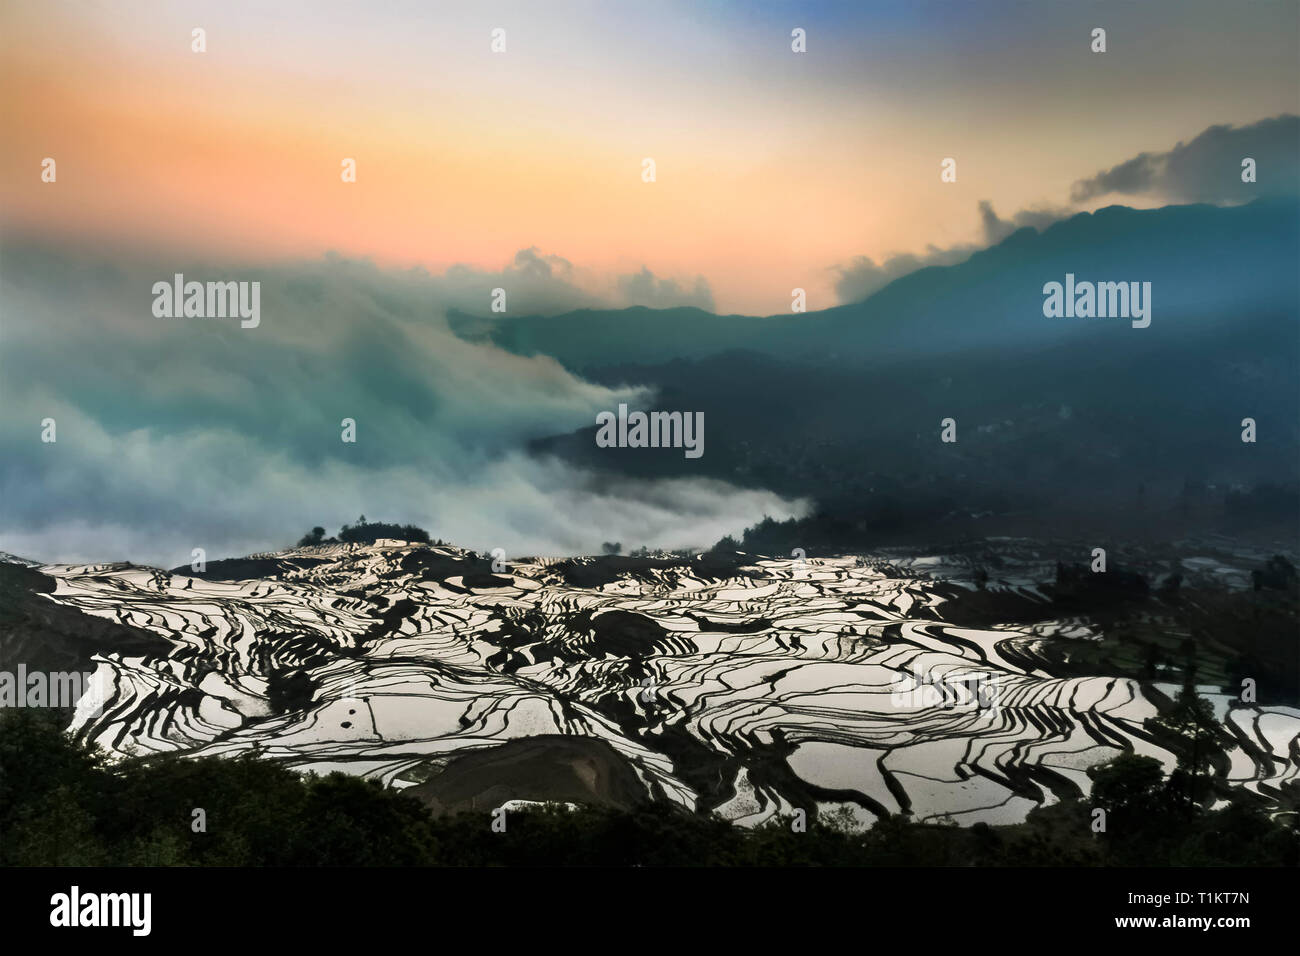 Aerial view of Yuanyang rice terraces at Duoyishu view point with its mystic sea of clouds at daybreak - Stock Image